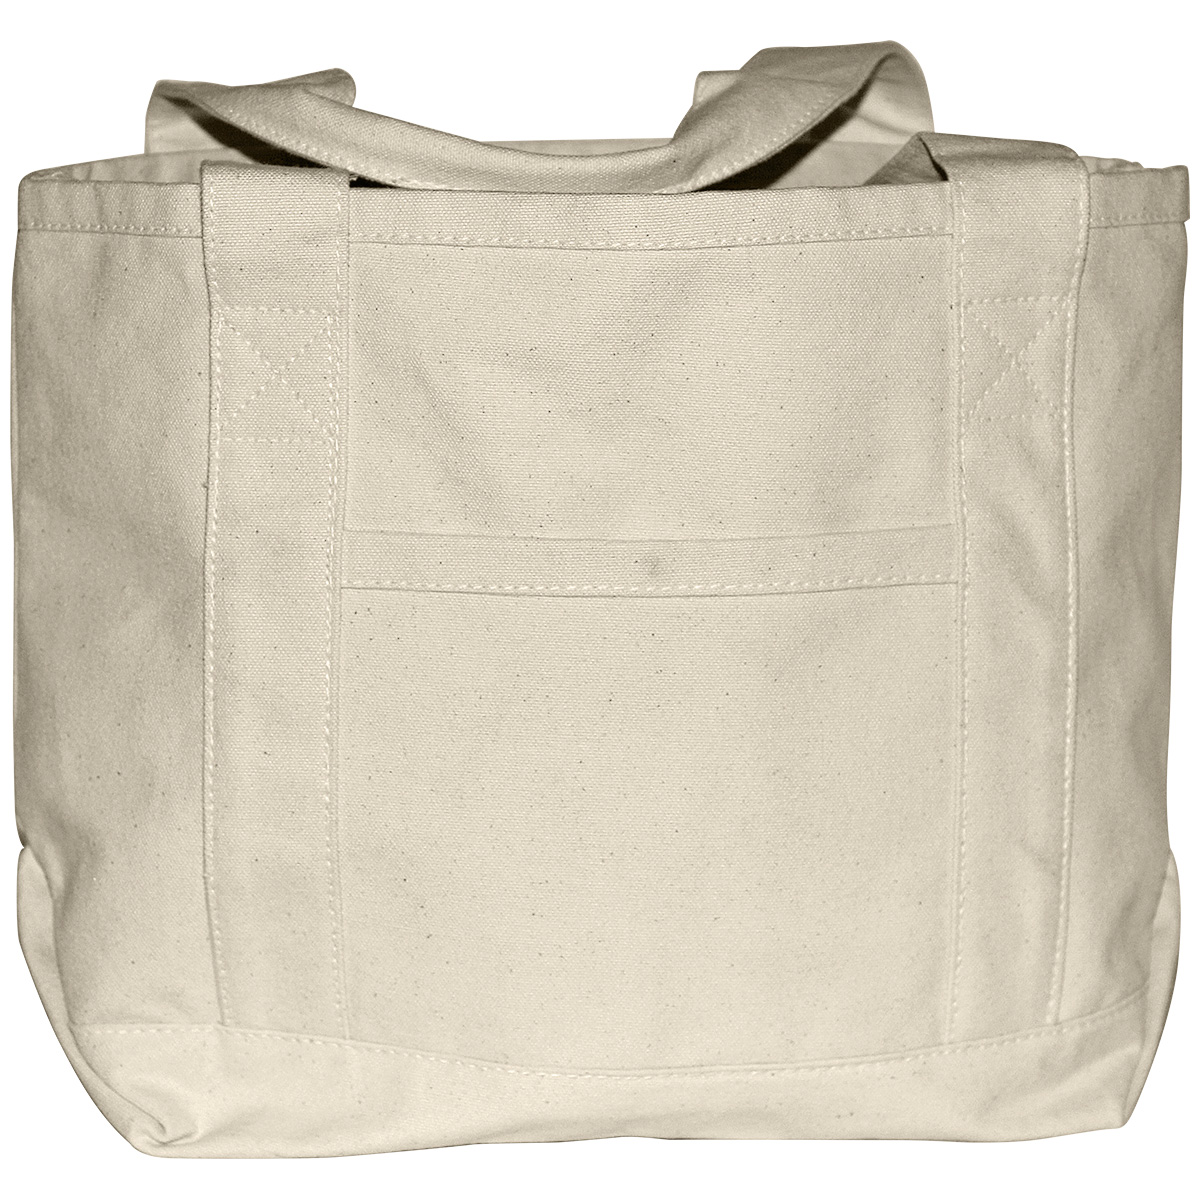 Canvas Boat Bag W Front Pocket 15x10x6in Natural